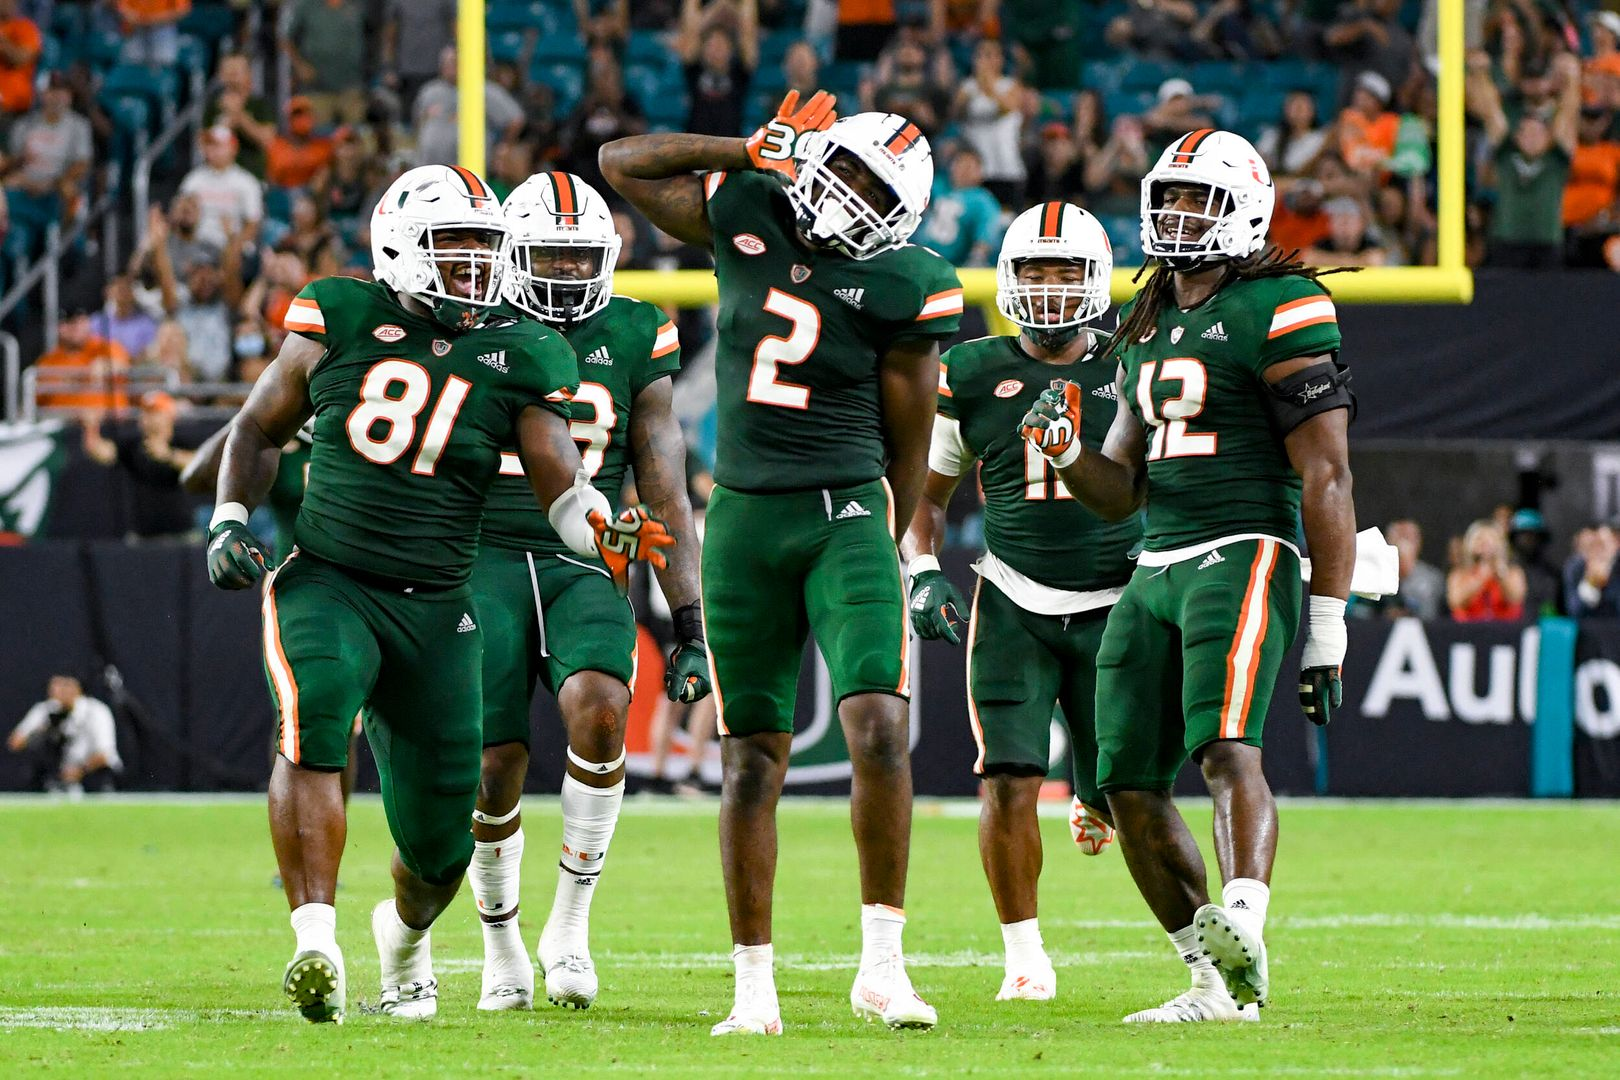 Takeaways from Miami's Win over Appalachian State